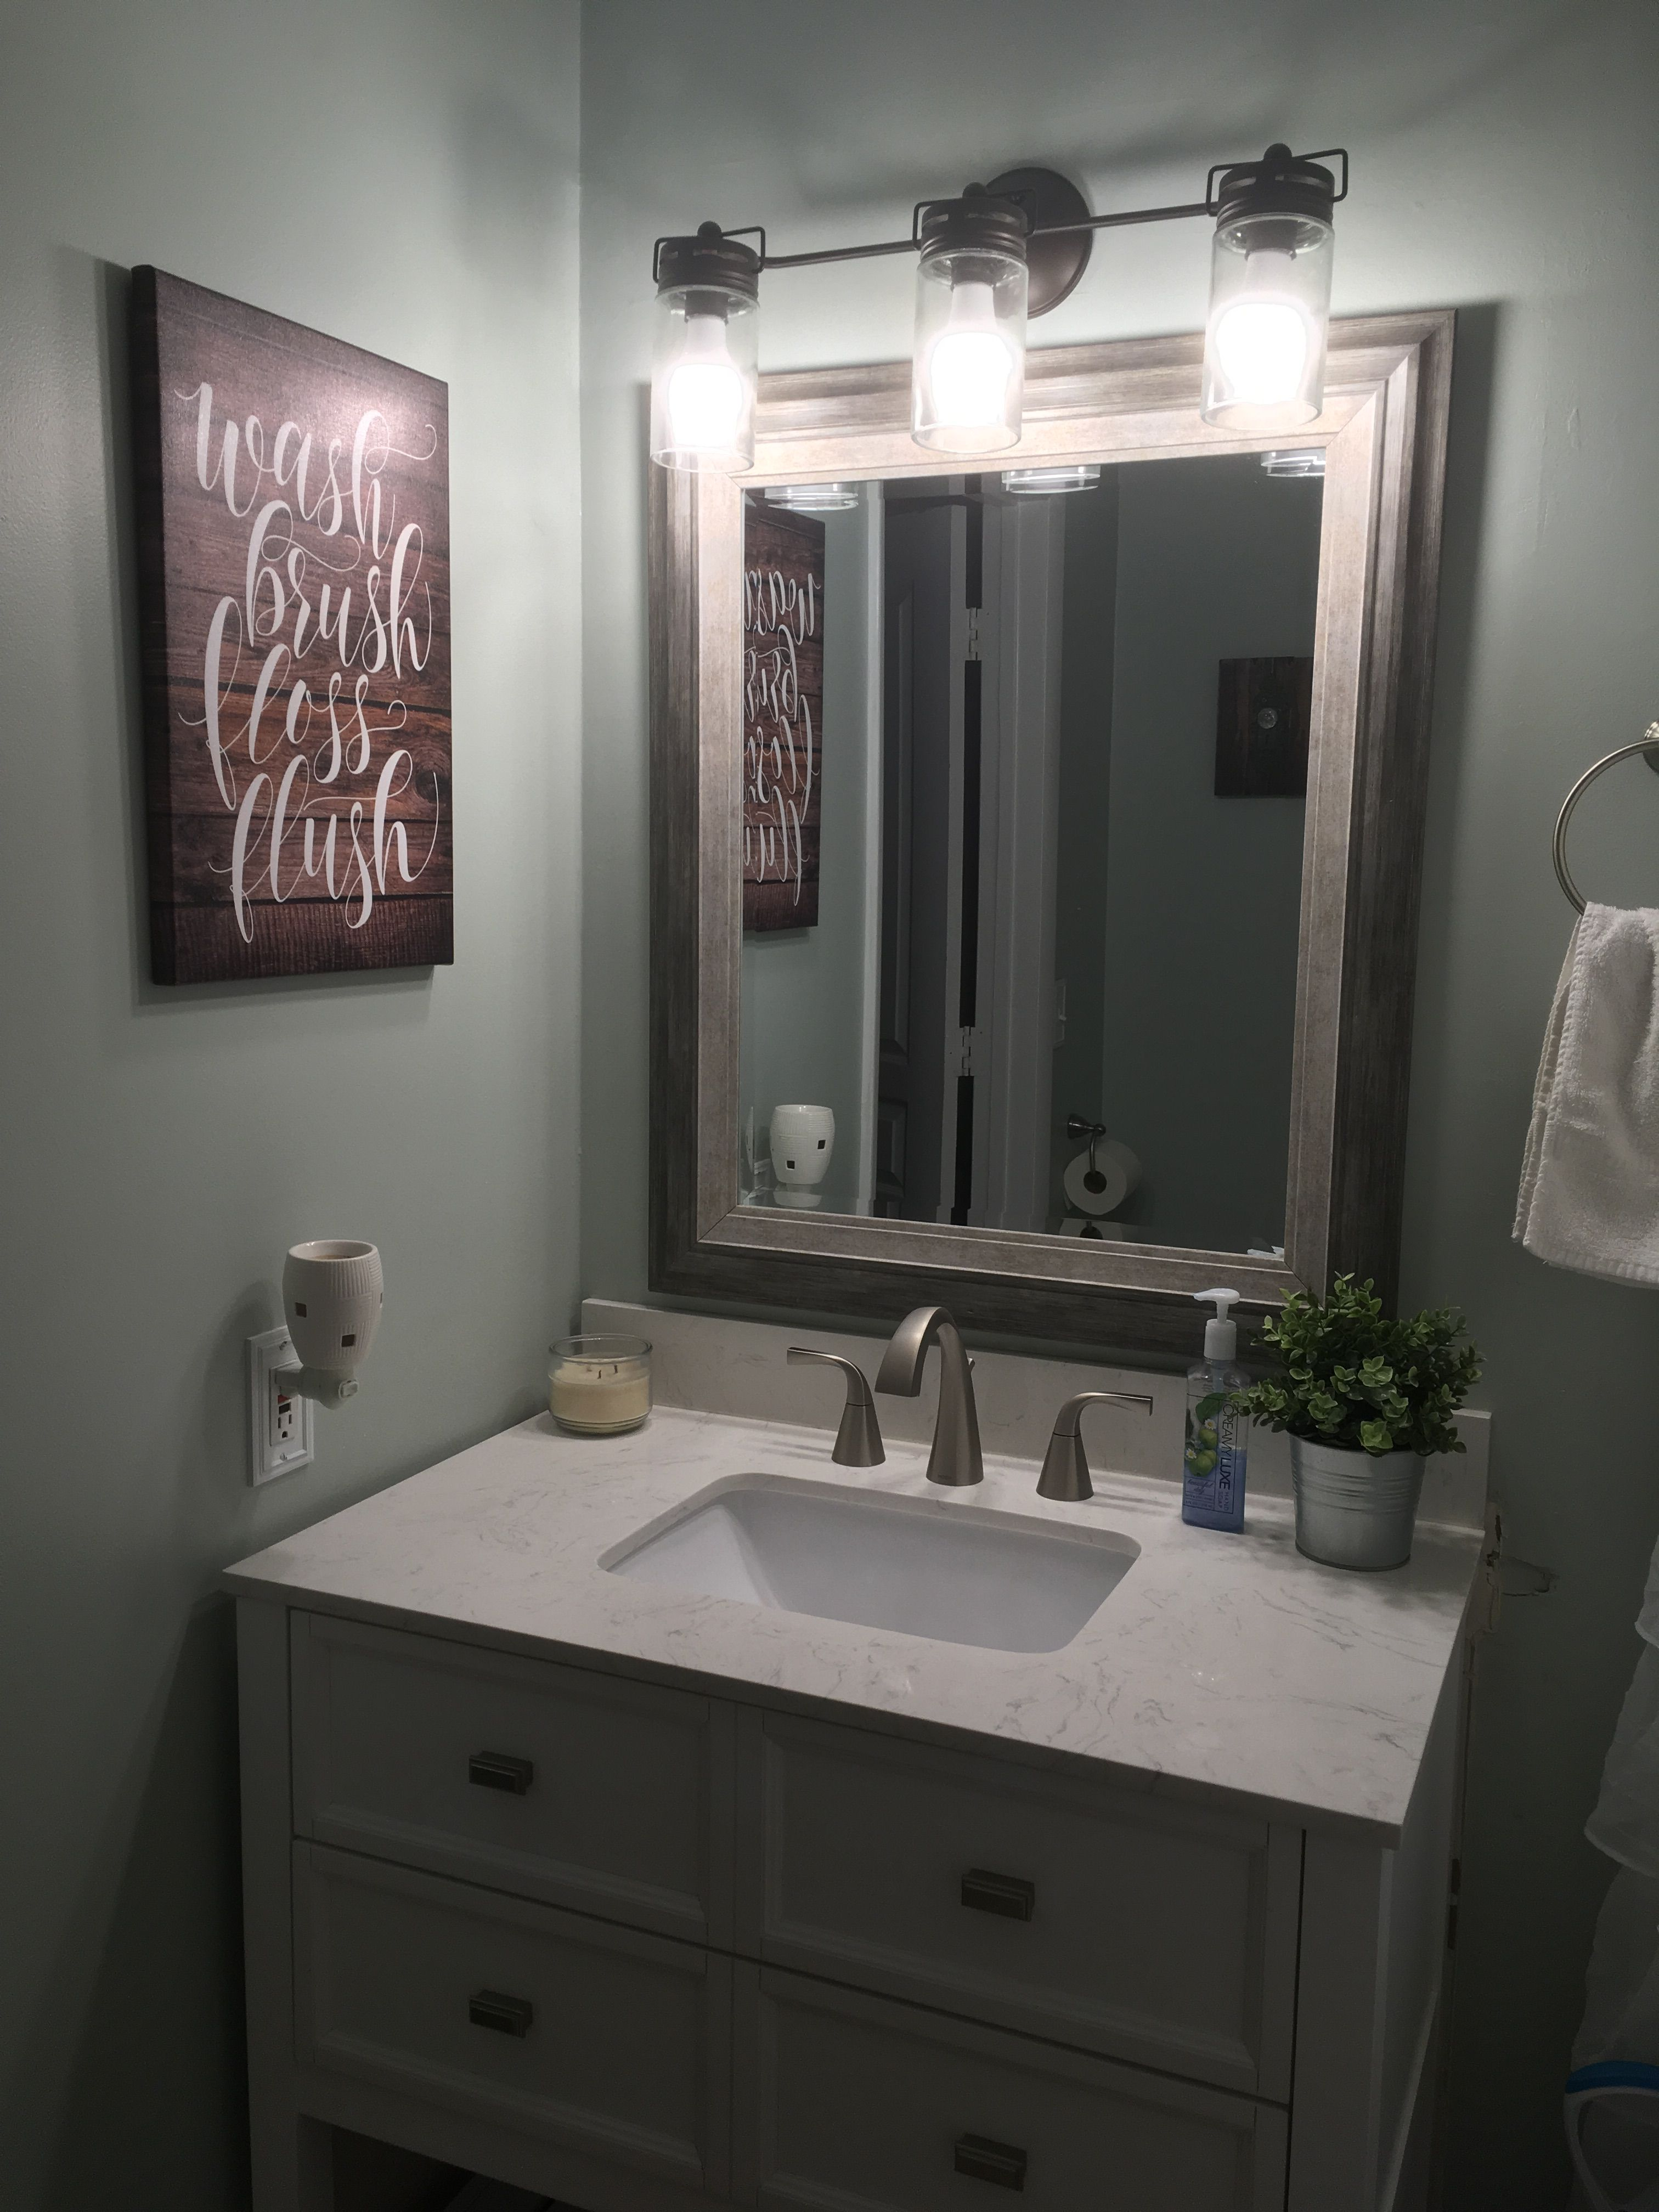 Idea by Savannah Roberts on My House | Framed bathroom ...